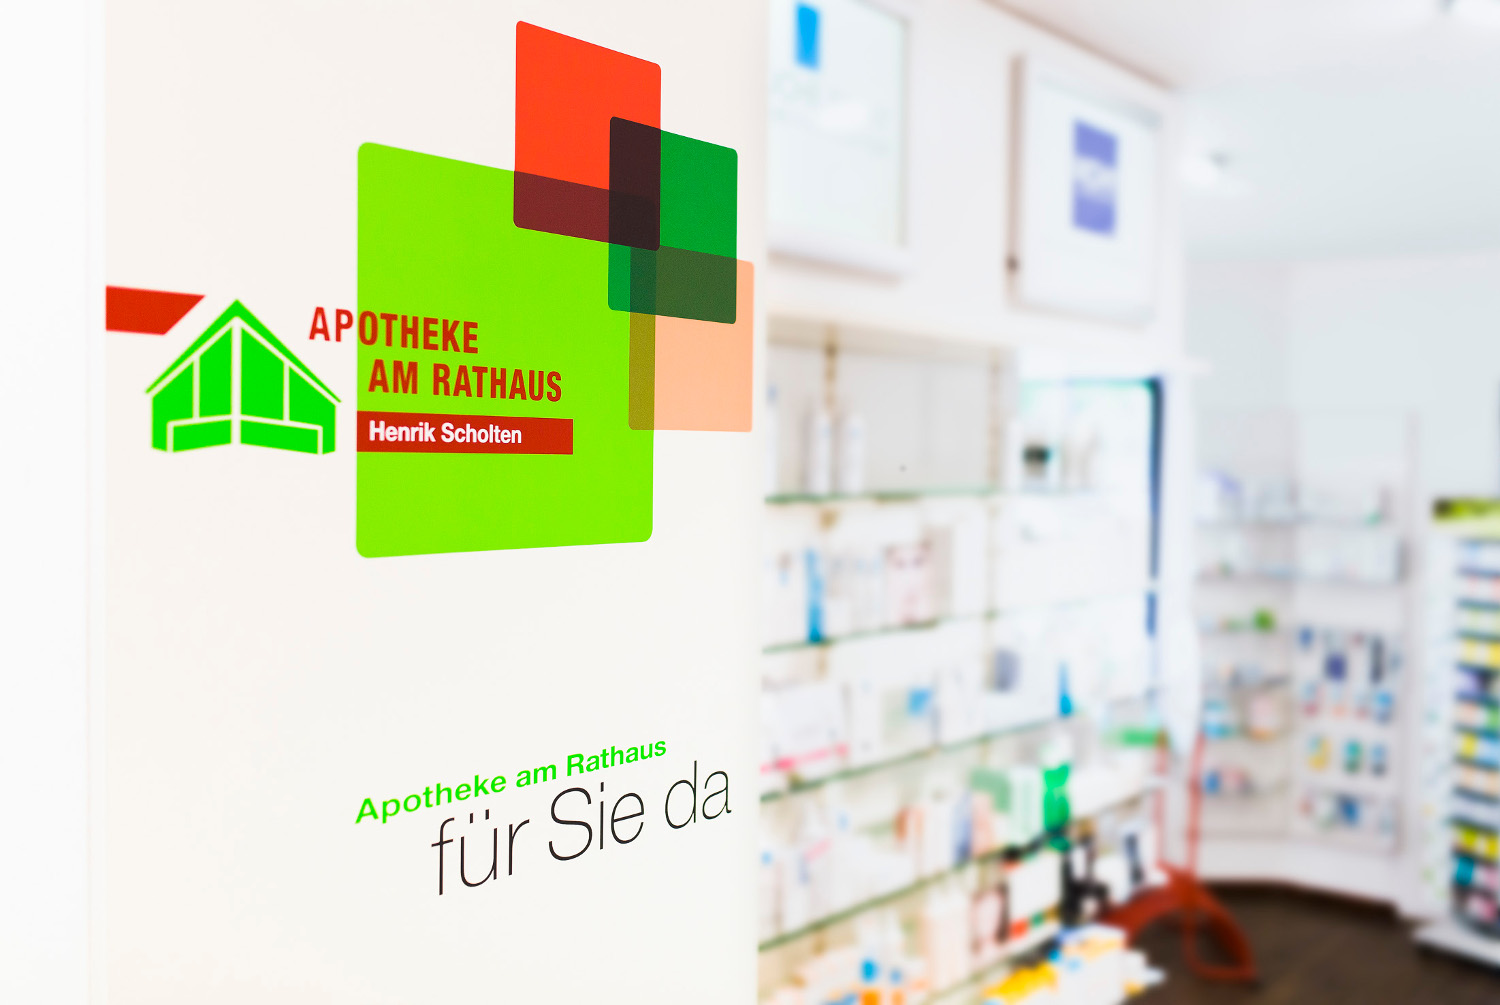 Marien Apotheke-Web Version-©henning ross-23